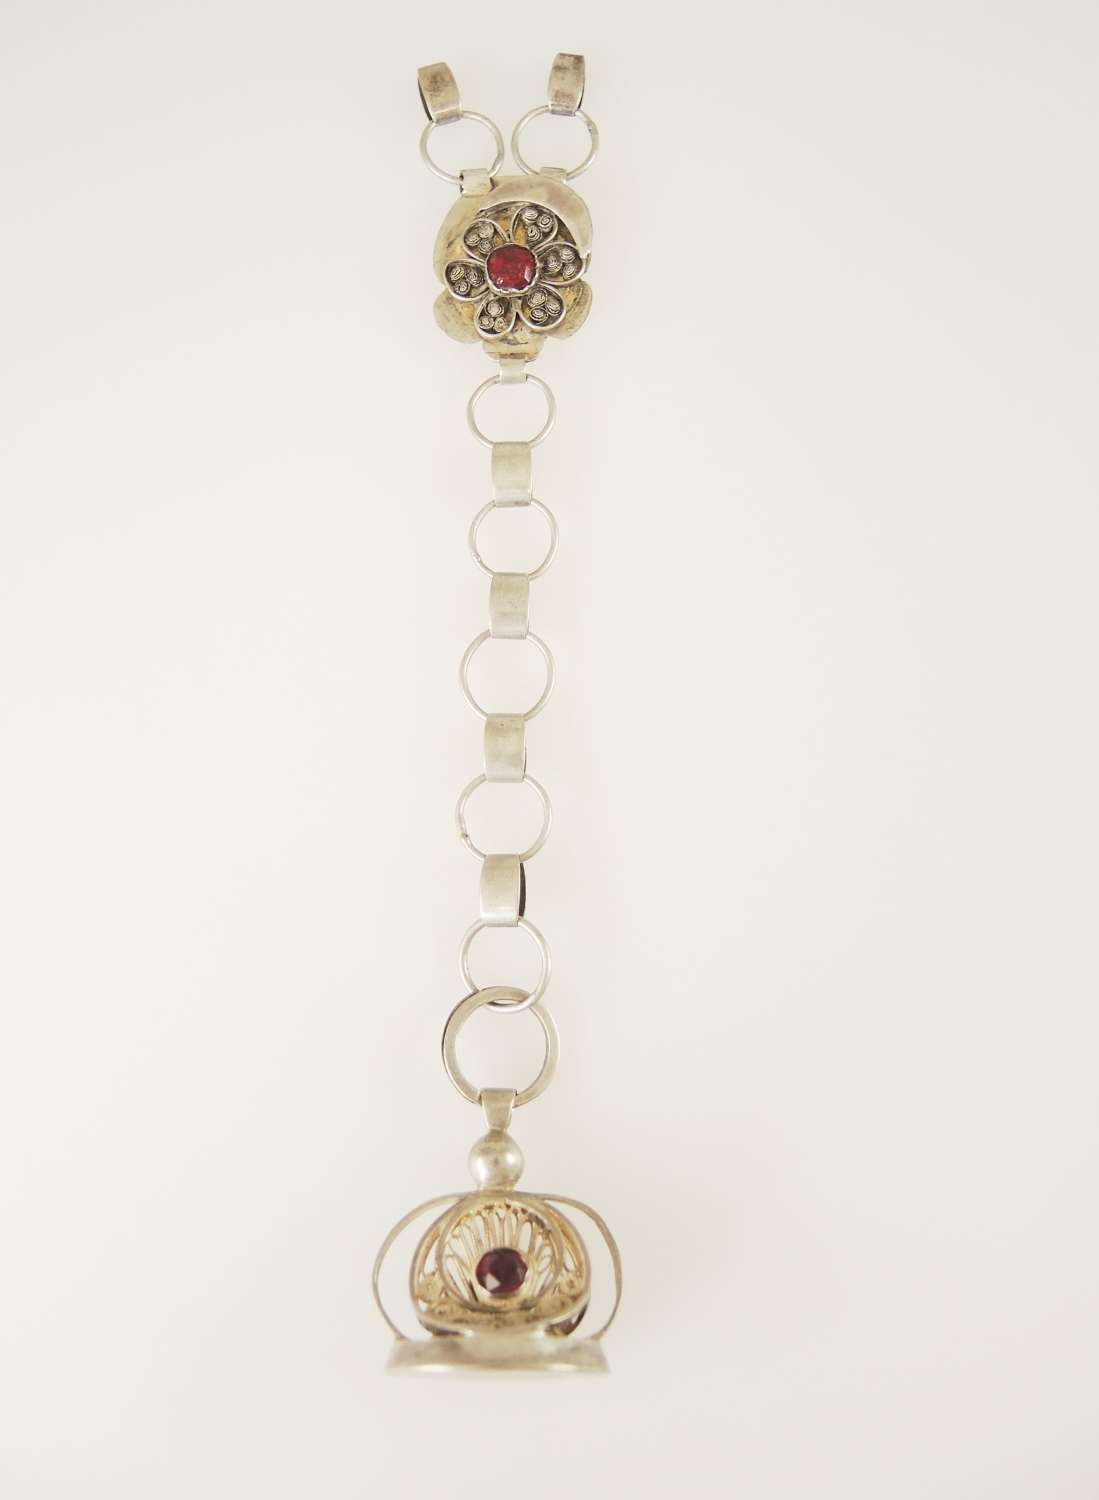 Dutch silver Seal and chatelaine c1850